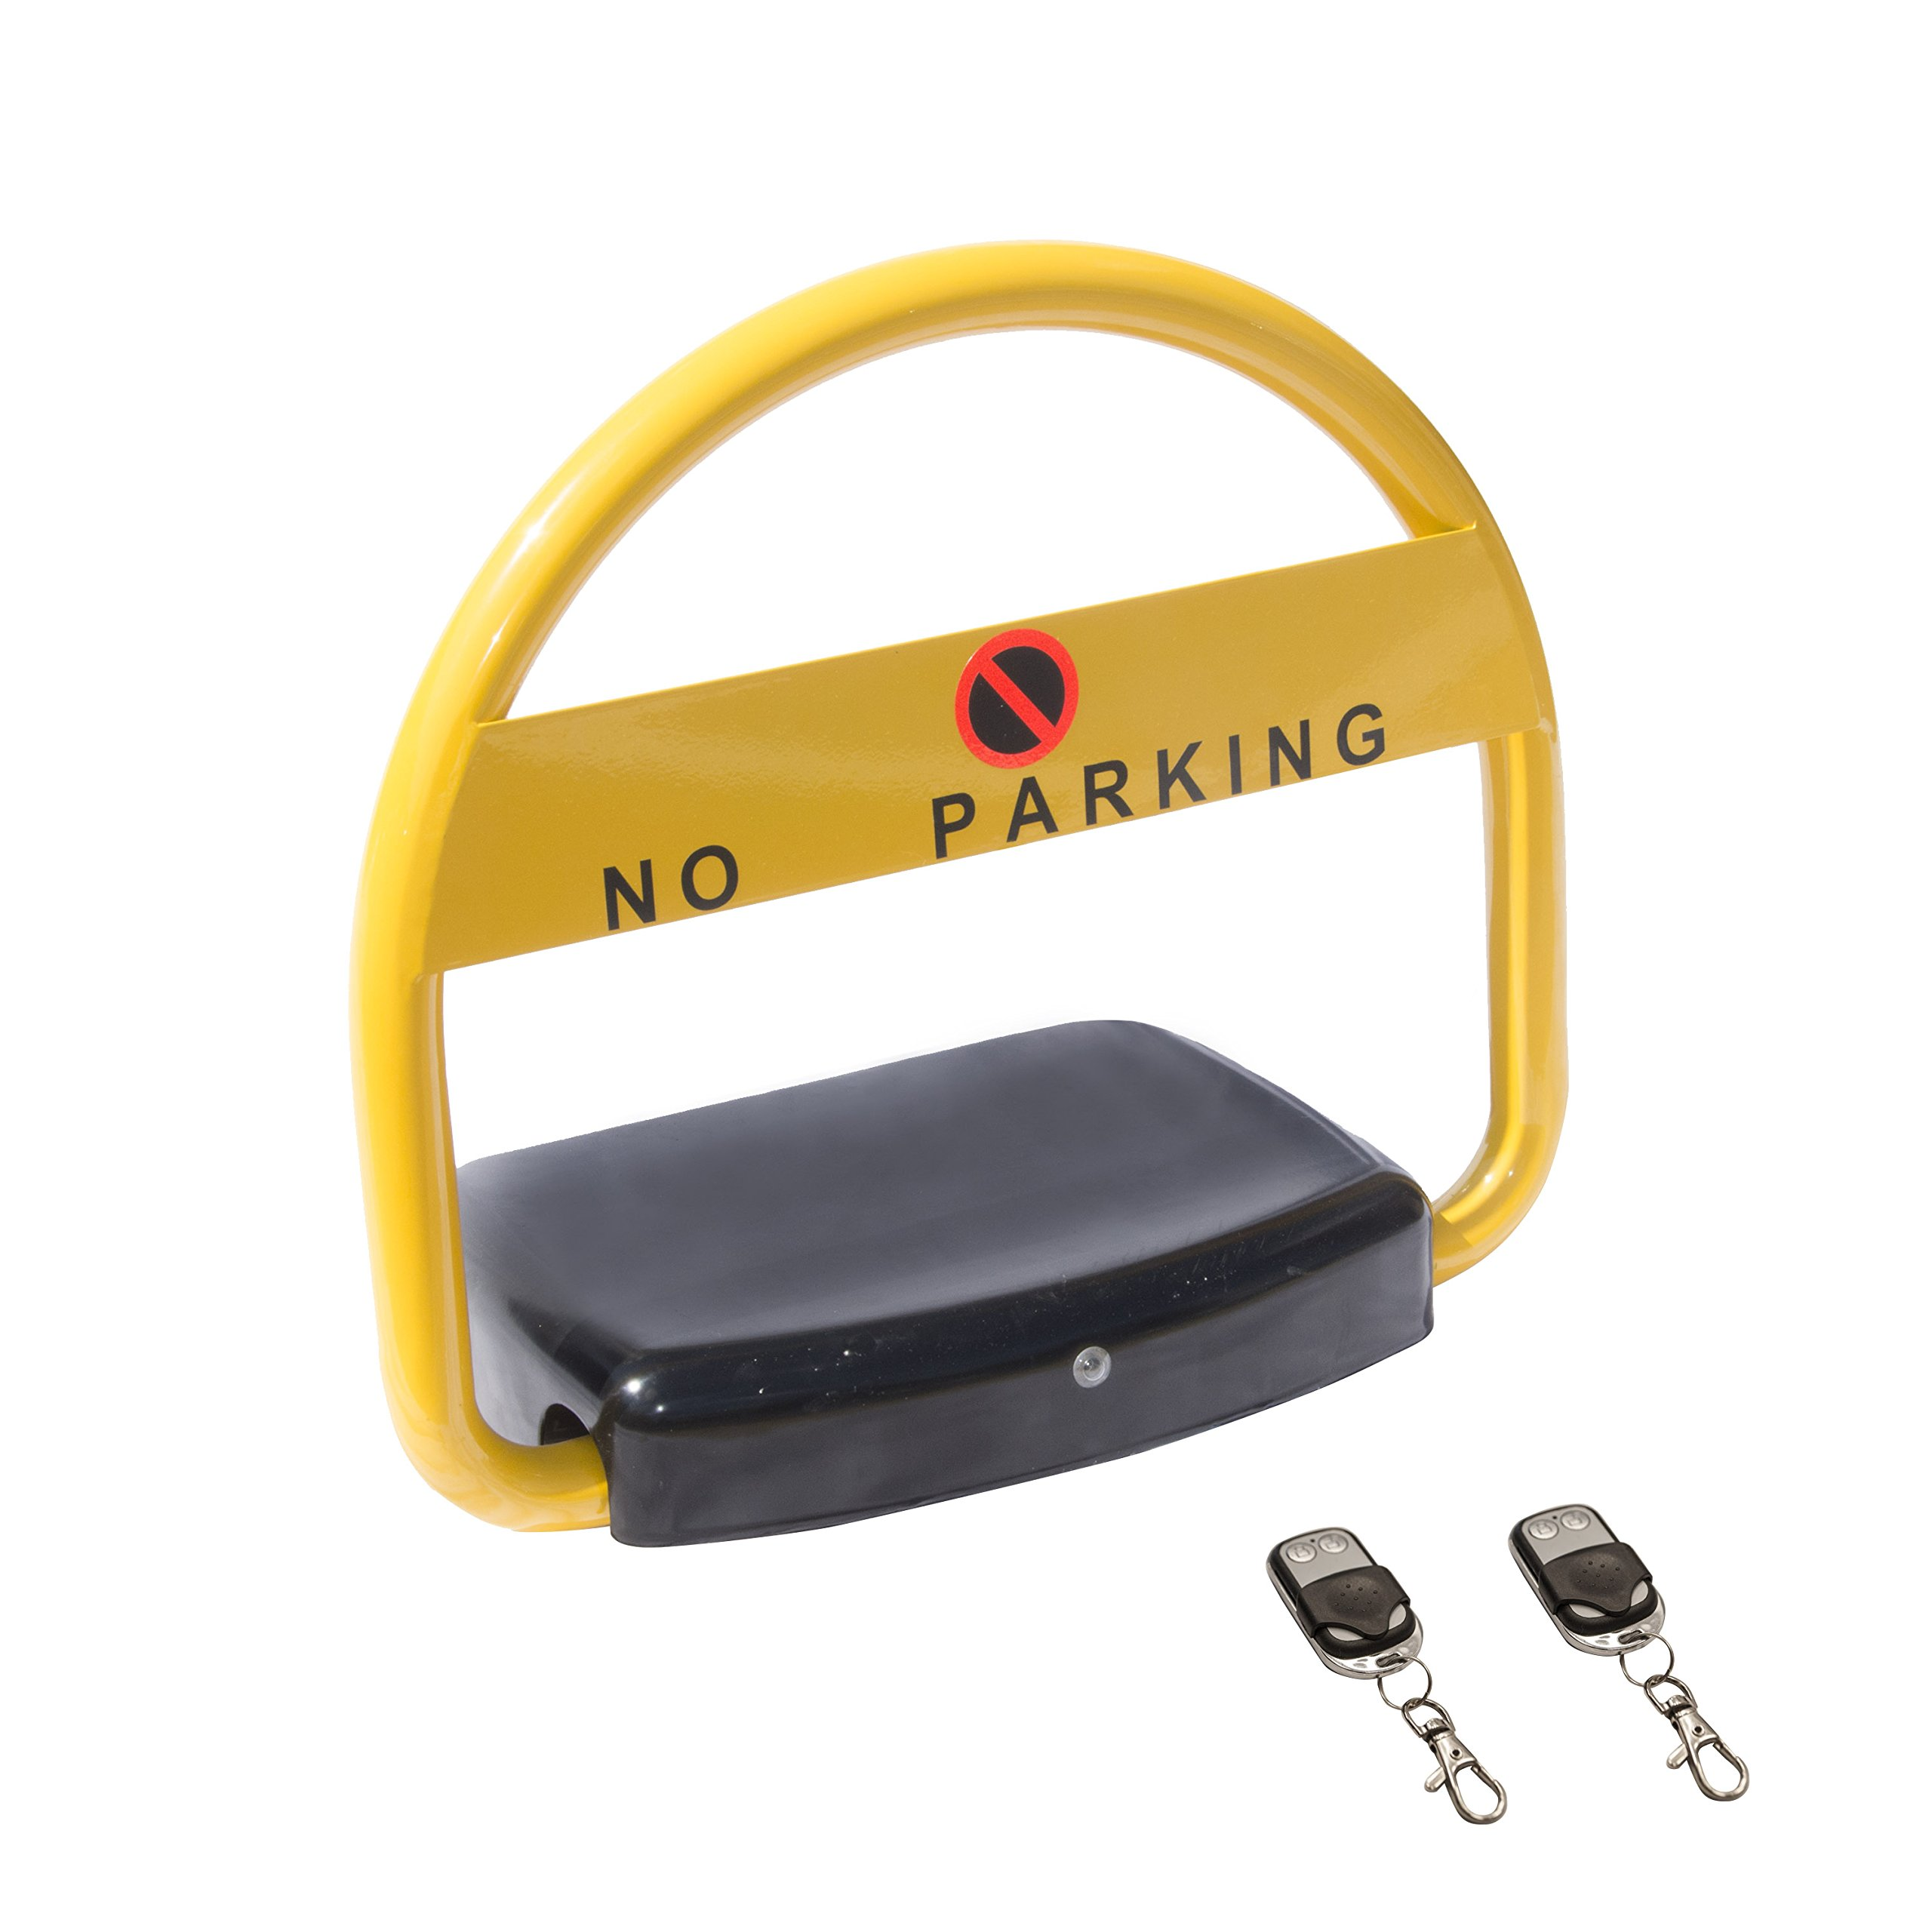 TURBOLOCK Solid Steel Bluetooth TL-500PR Parking Lock w//Alarm /& App Protect Your Parking Space; Easy Installation